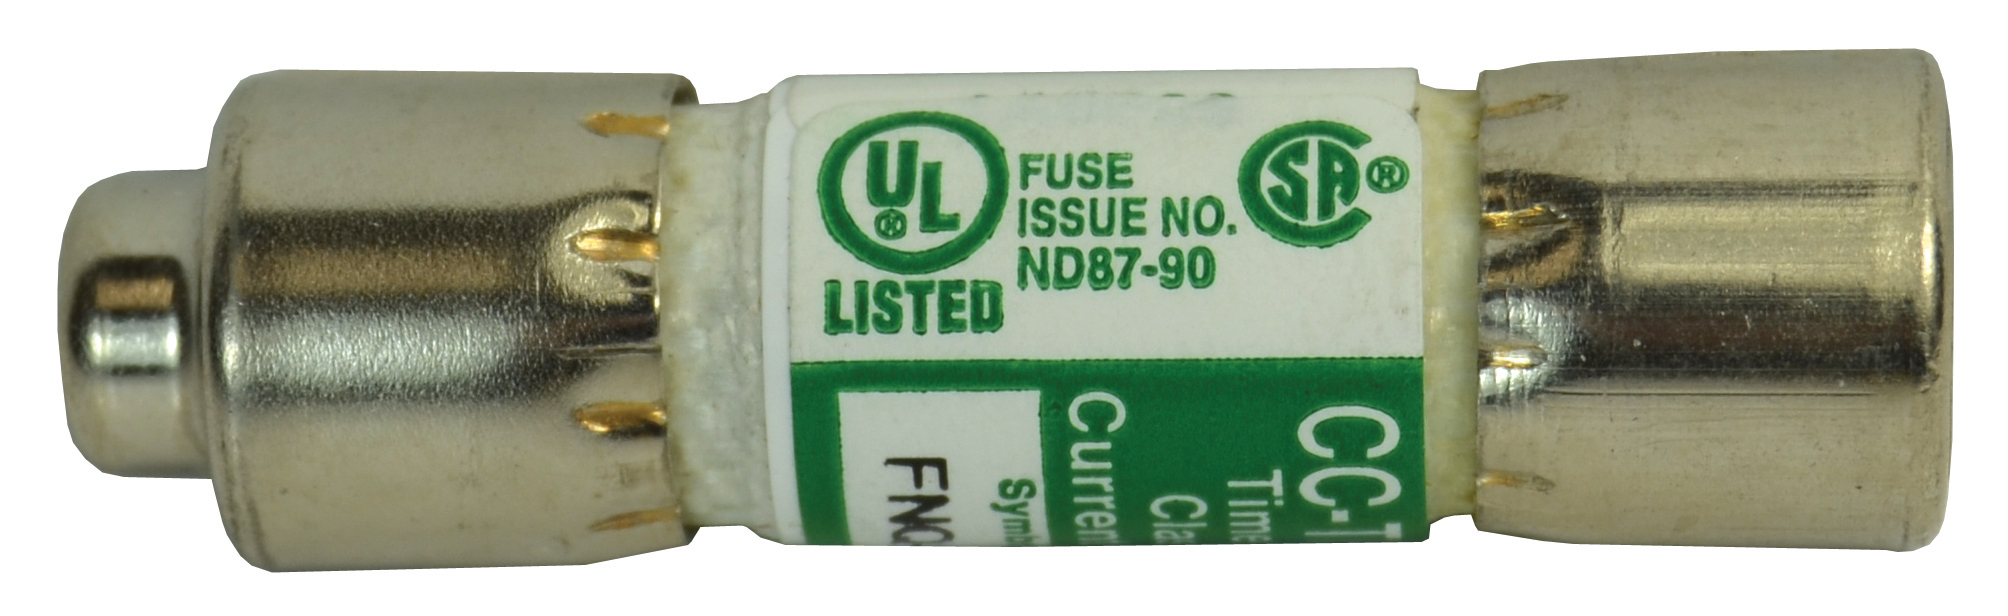 1 Amp FNQ-R Type 13/32 Inch x 1-1/2 Inch 600 VAC Time Delay Rejection Type Glass Industrial Fuse